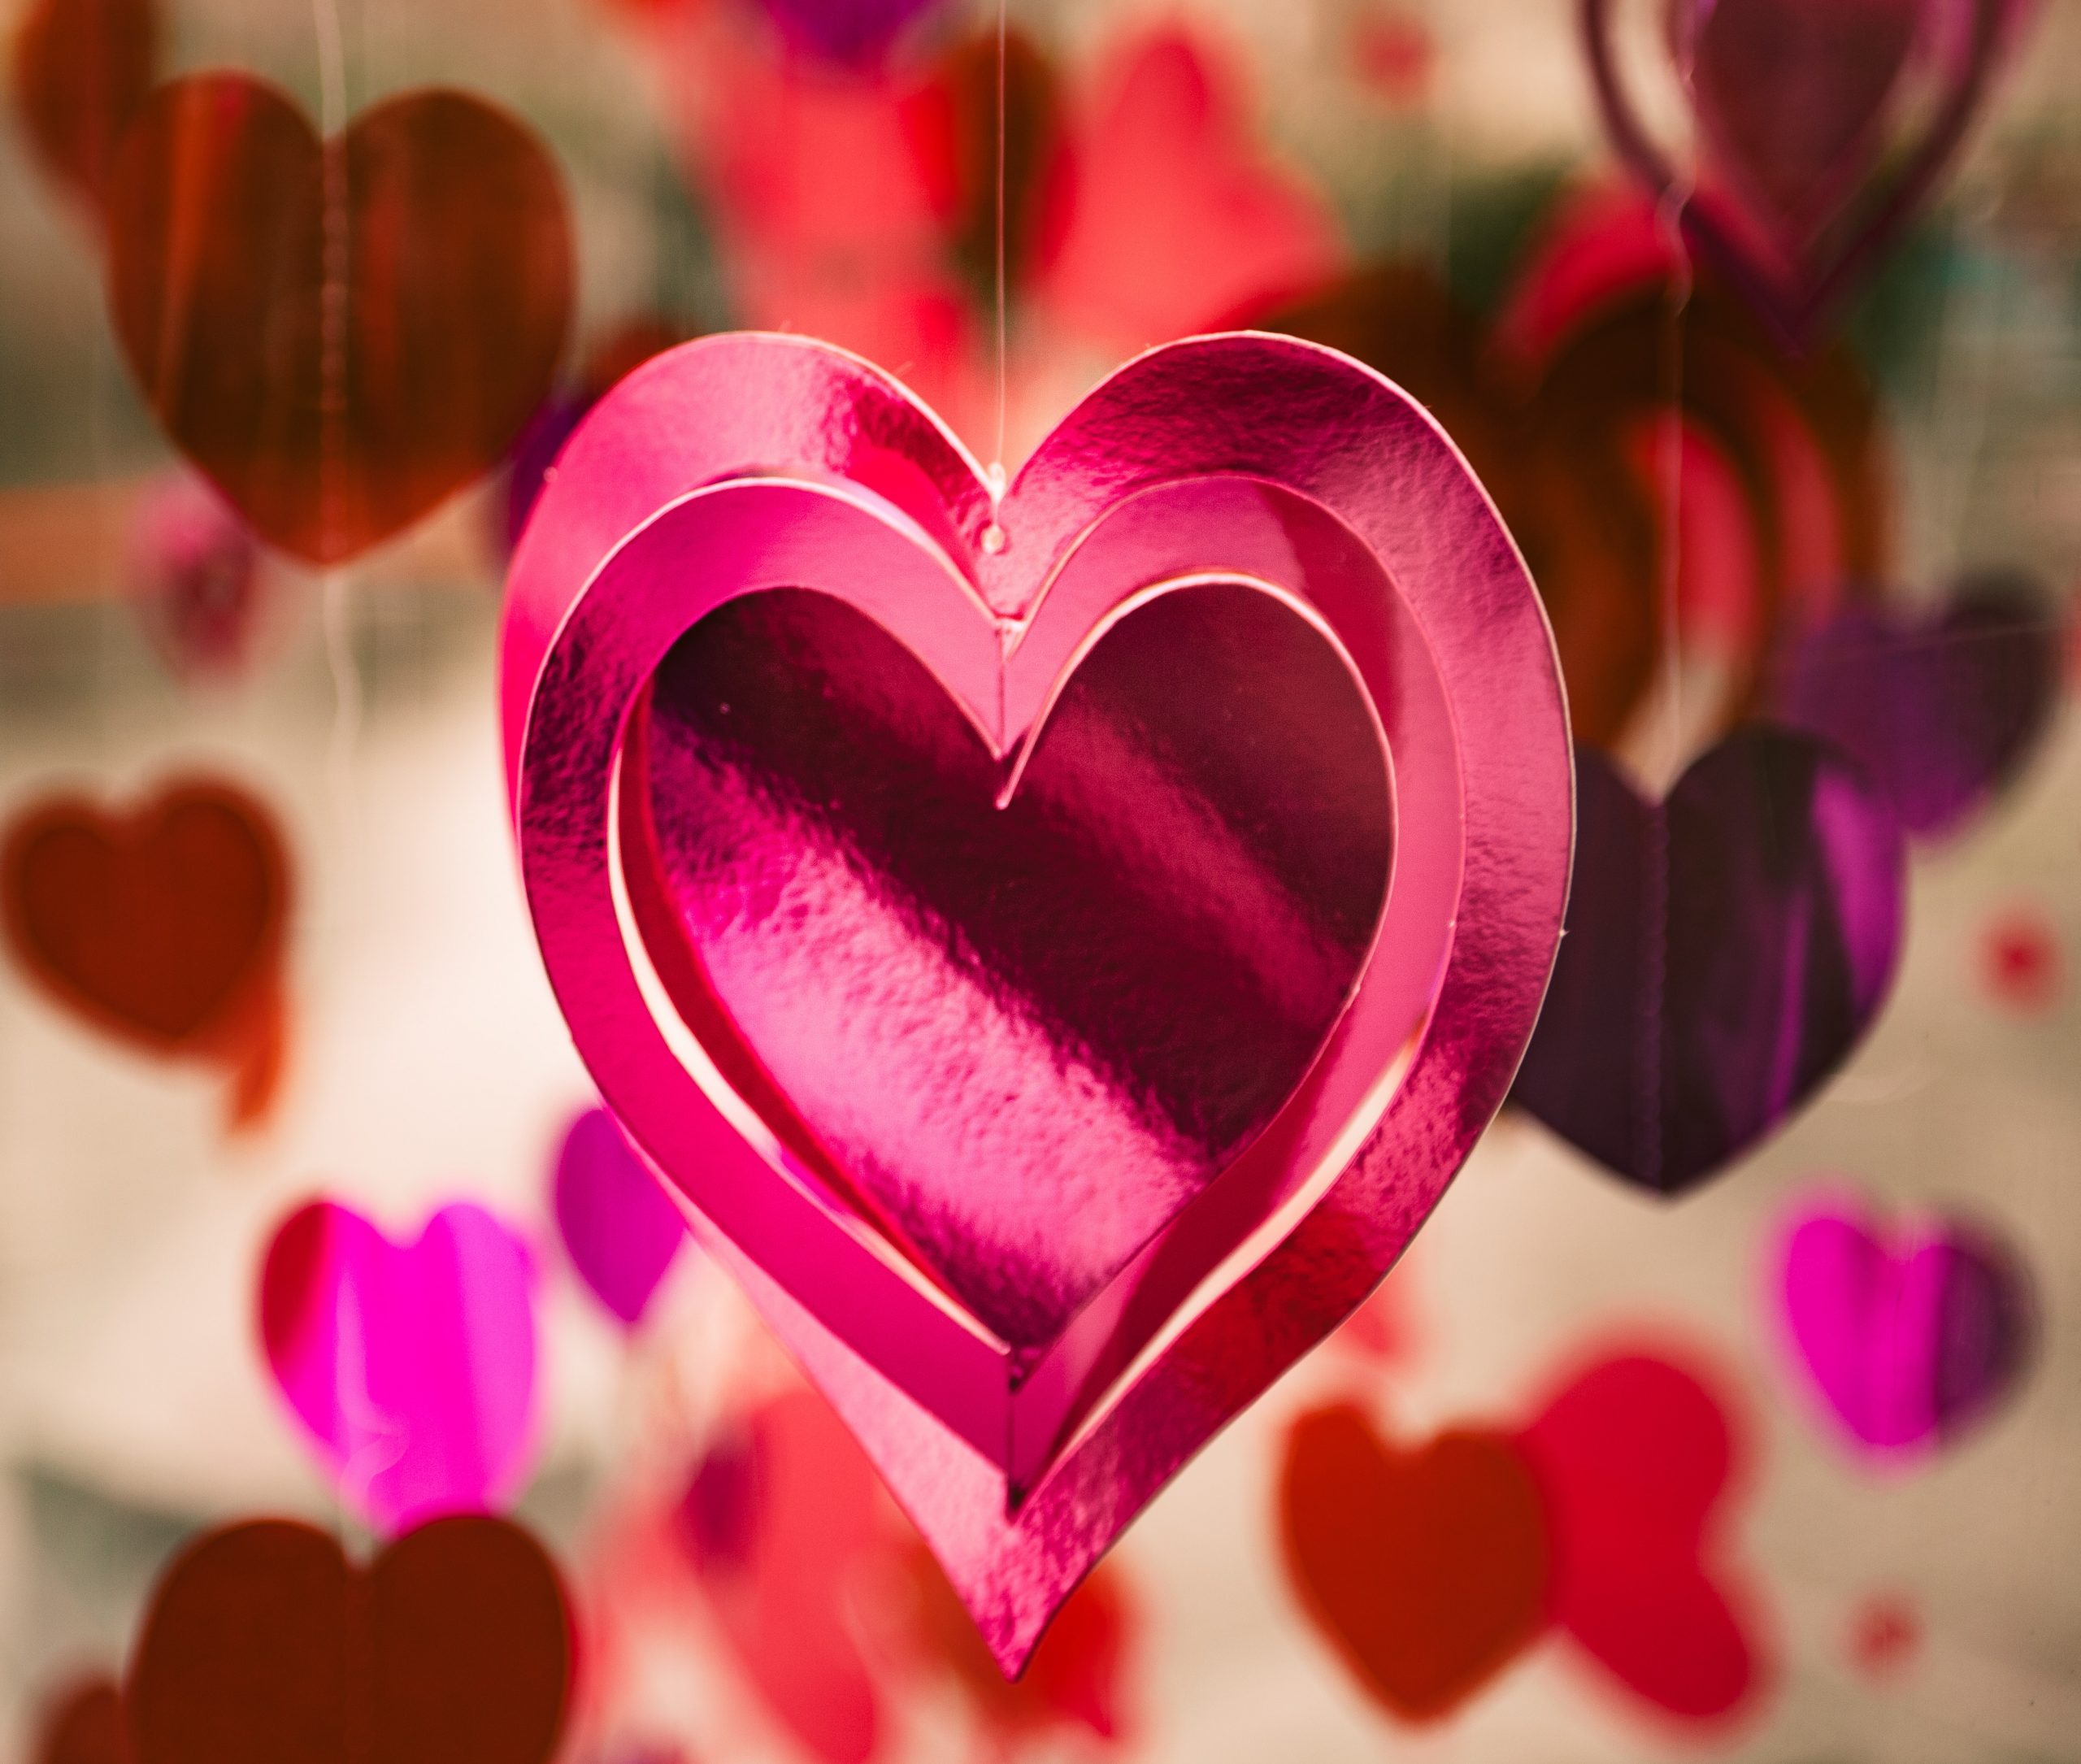 Ideas about love for Valentine's Day